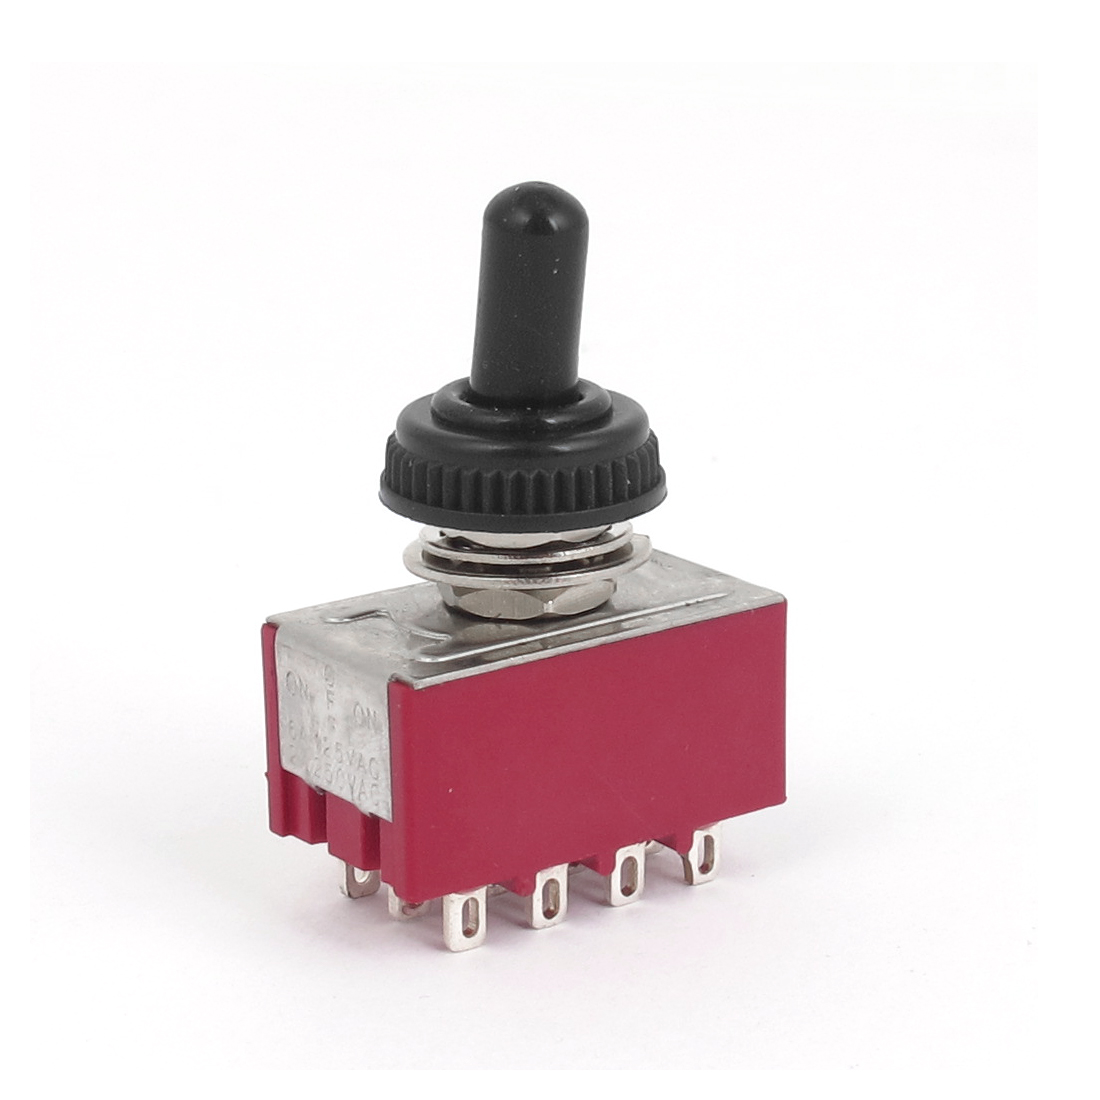 AC 250V 2A 125V 6A Waterproof Cap on/off/on 12pin 4PDT Toggle Switch Red Black